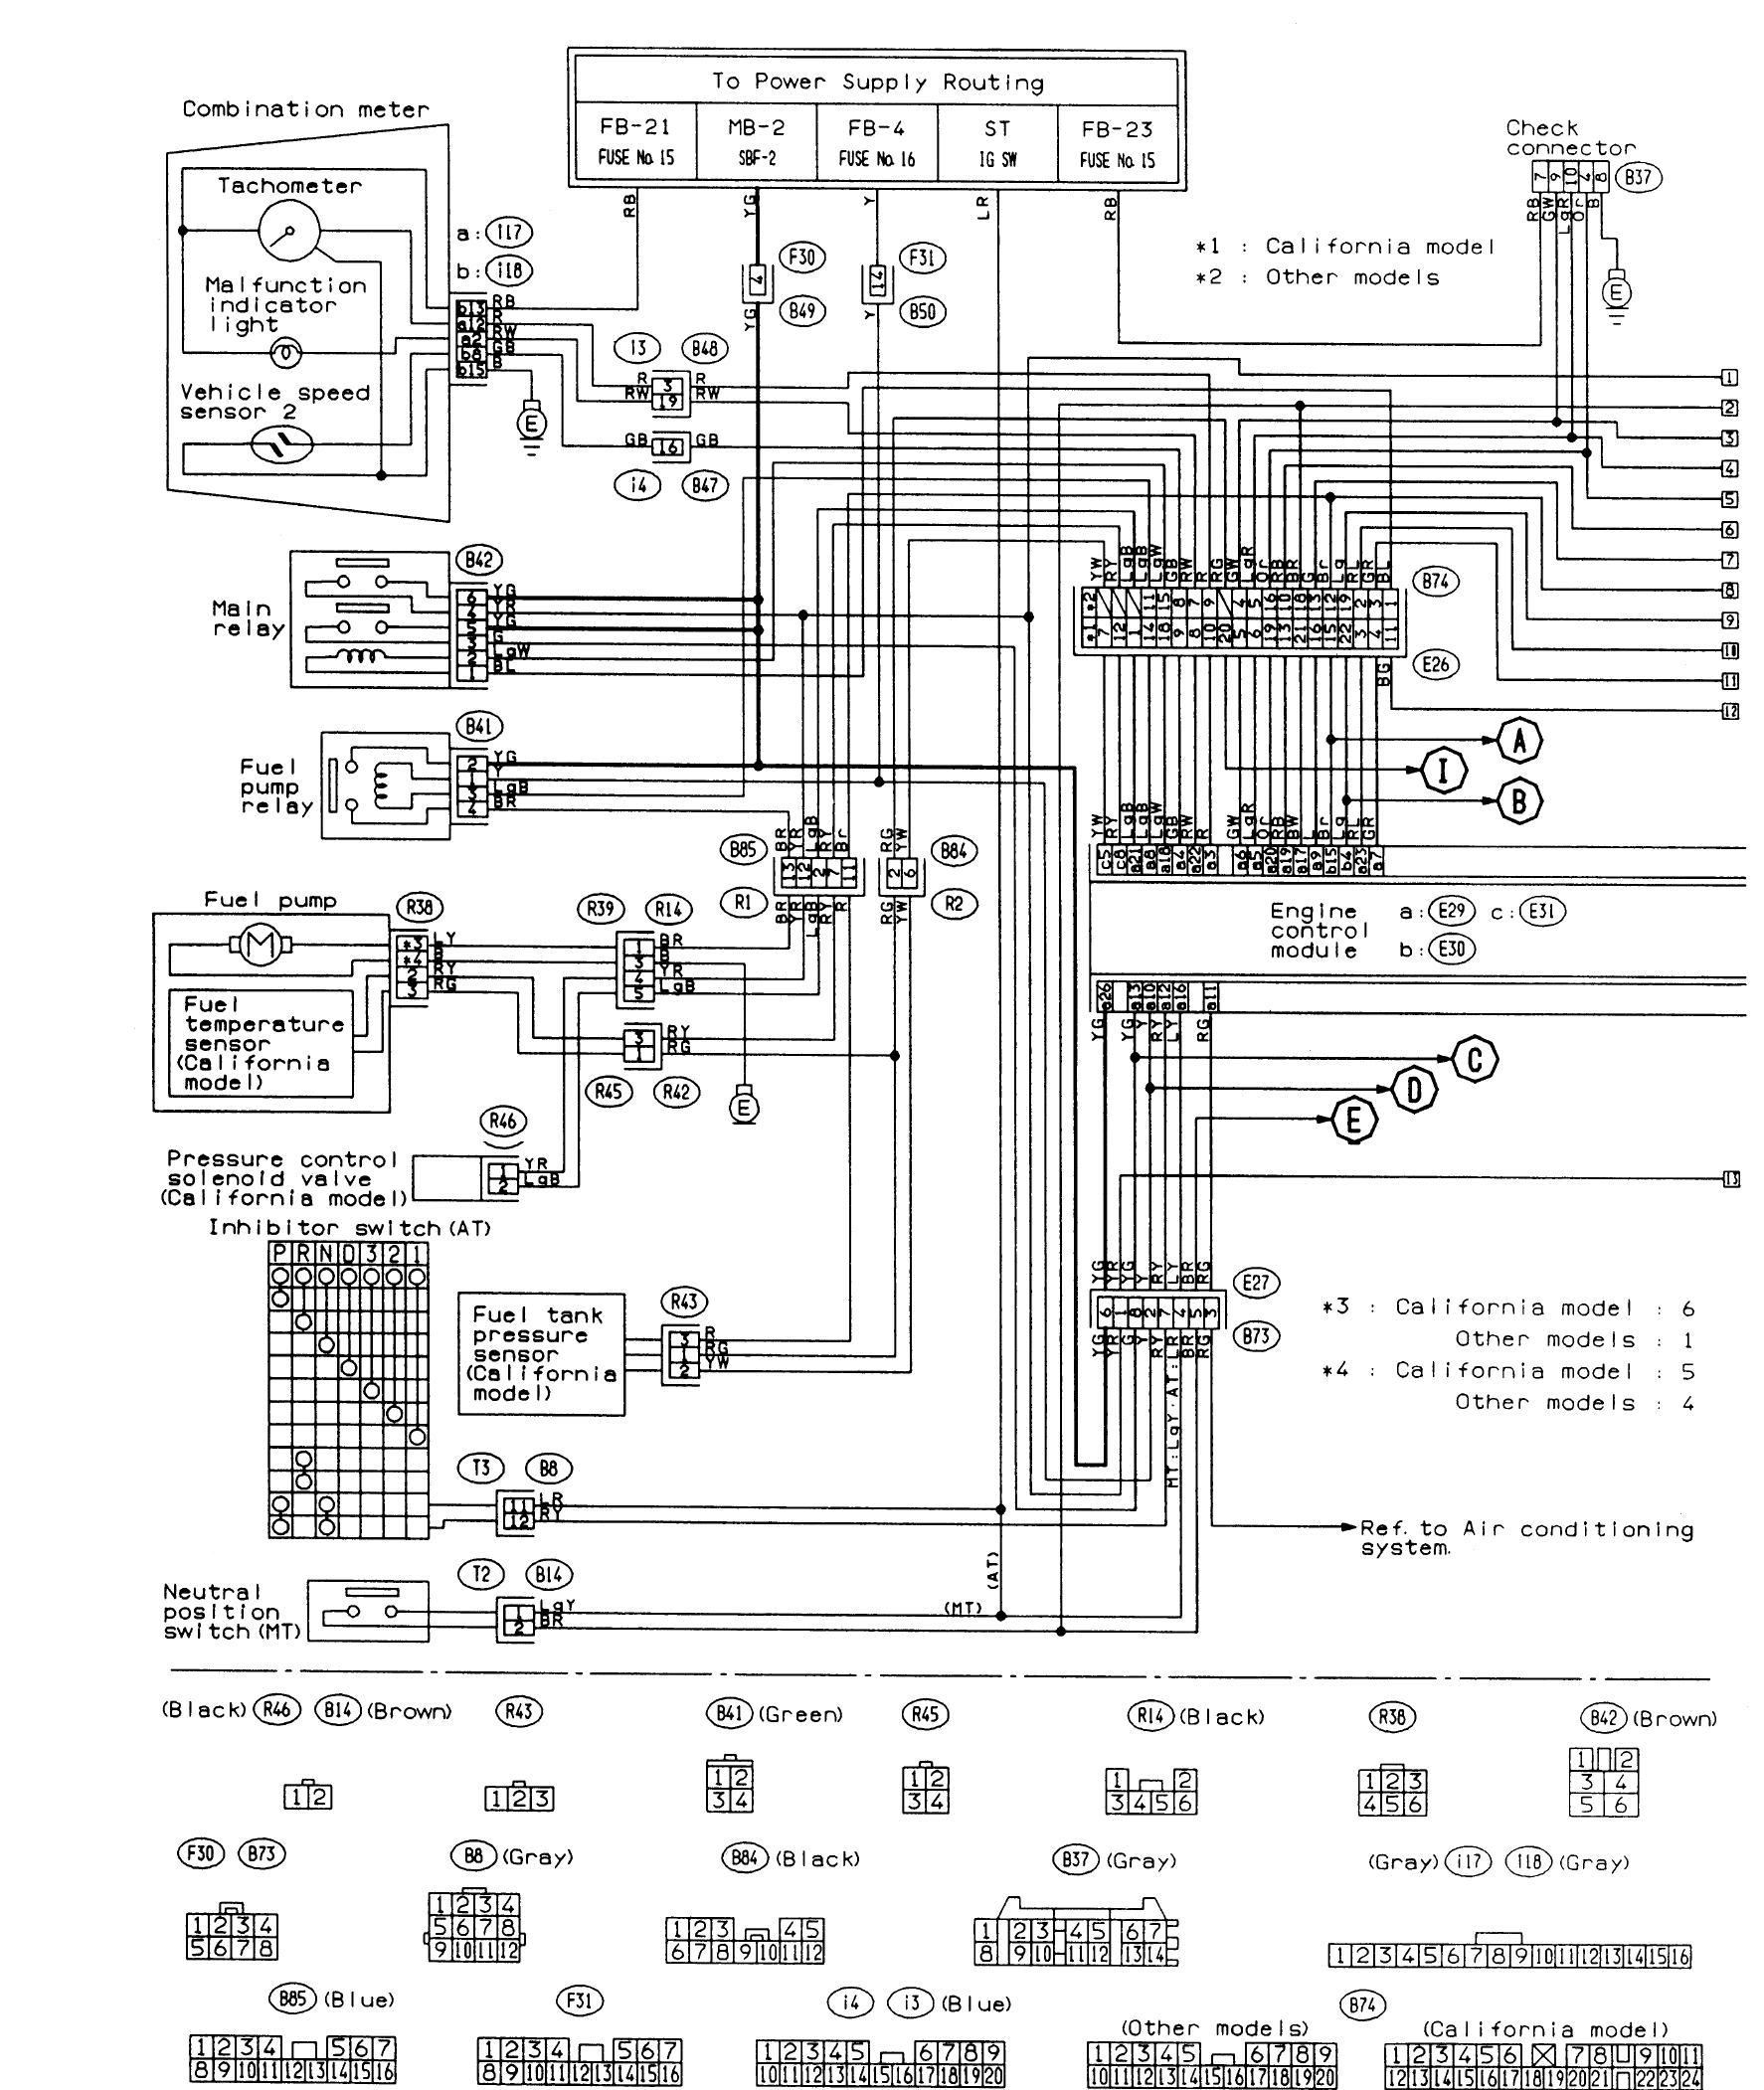 subaru ecu wiring diagram FUSlrCX subaru wiring diagram subaru cooling fan wiring diagram \u2022 wiring 2001 Subaru Outback Wiring-Diagram at soozxer.org